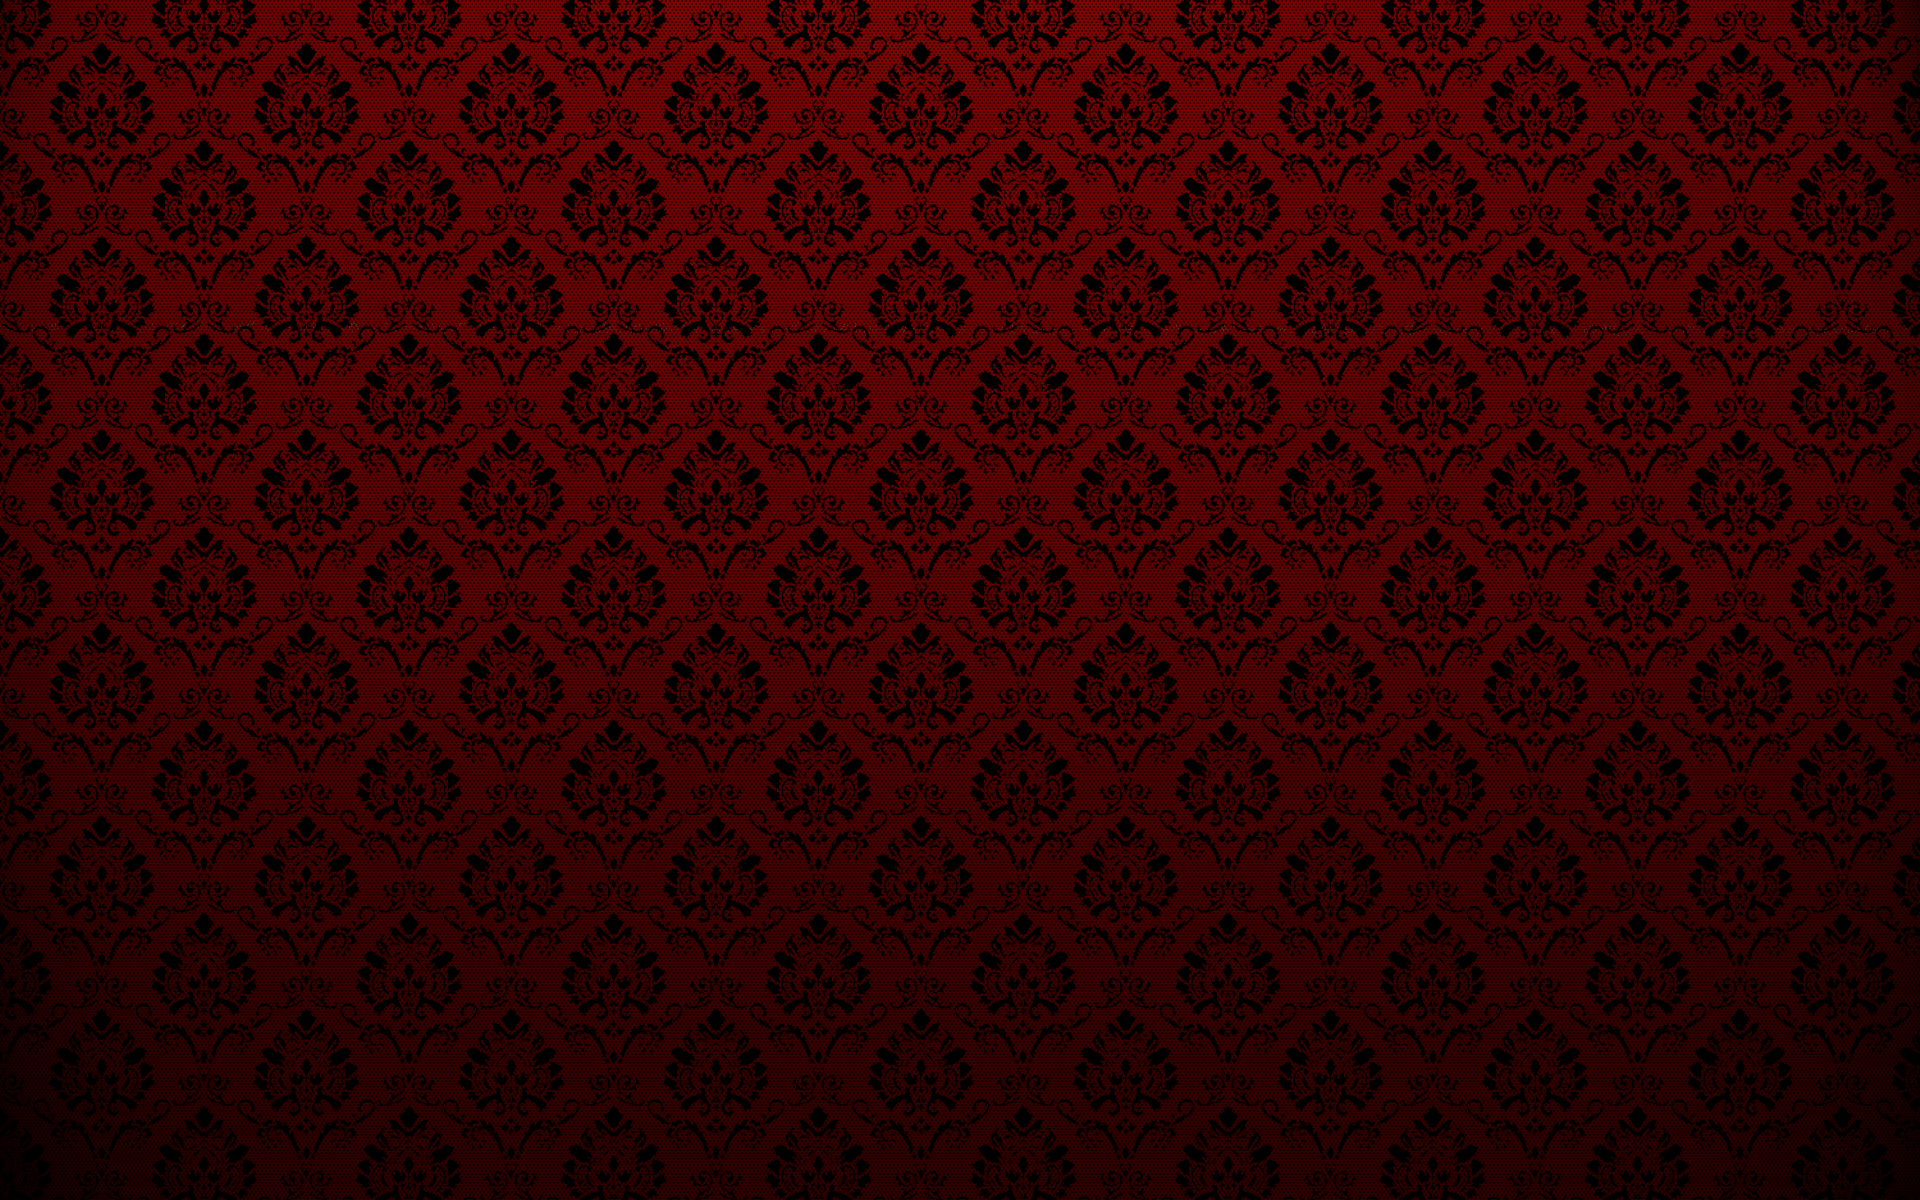 Download hd red wallpaper for desktop and mobile 1 wall wallpaper